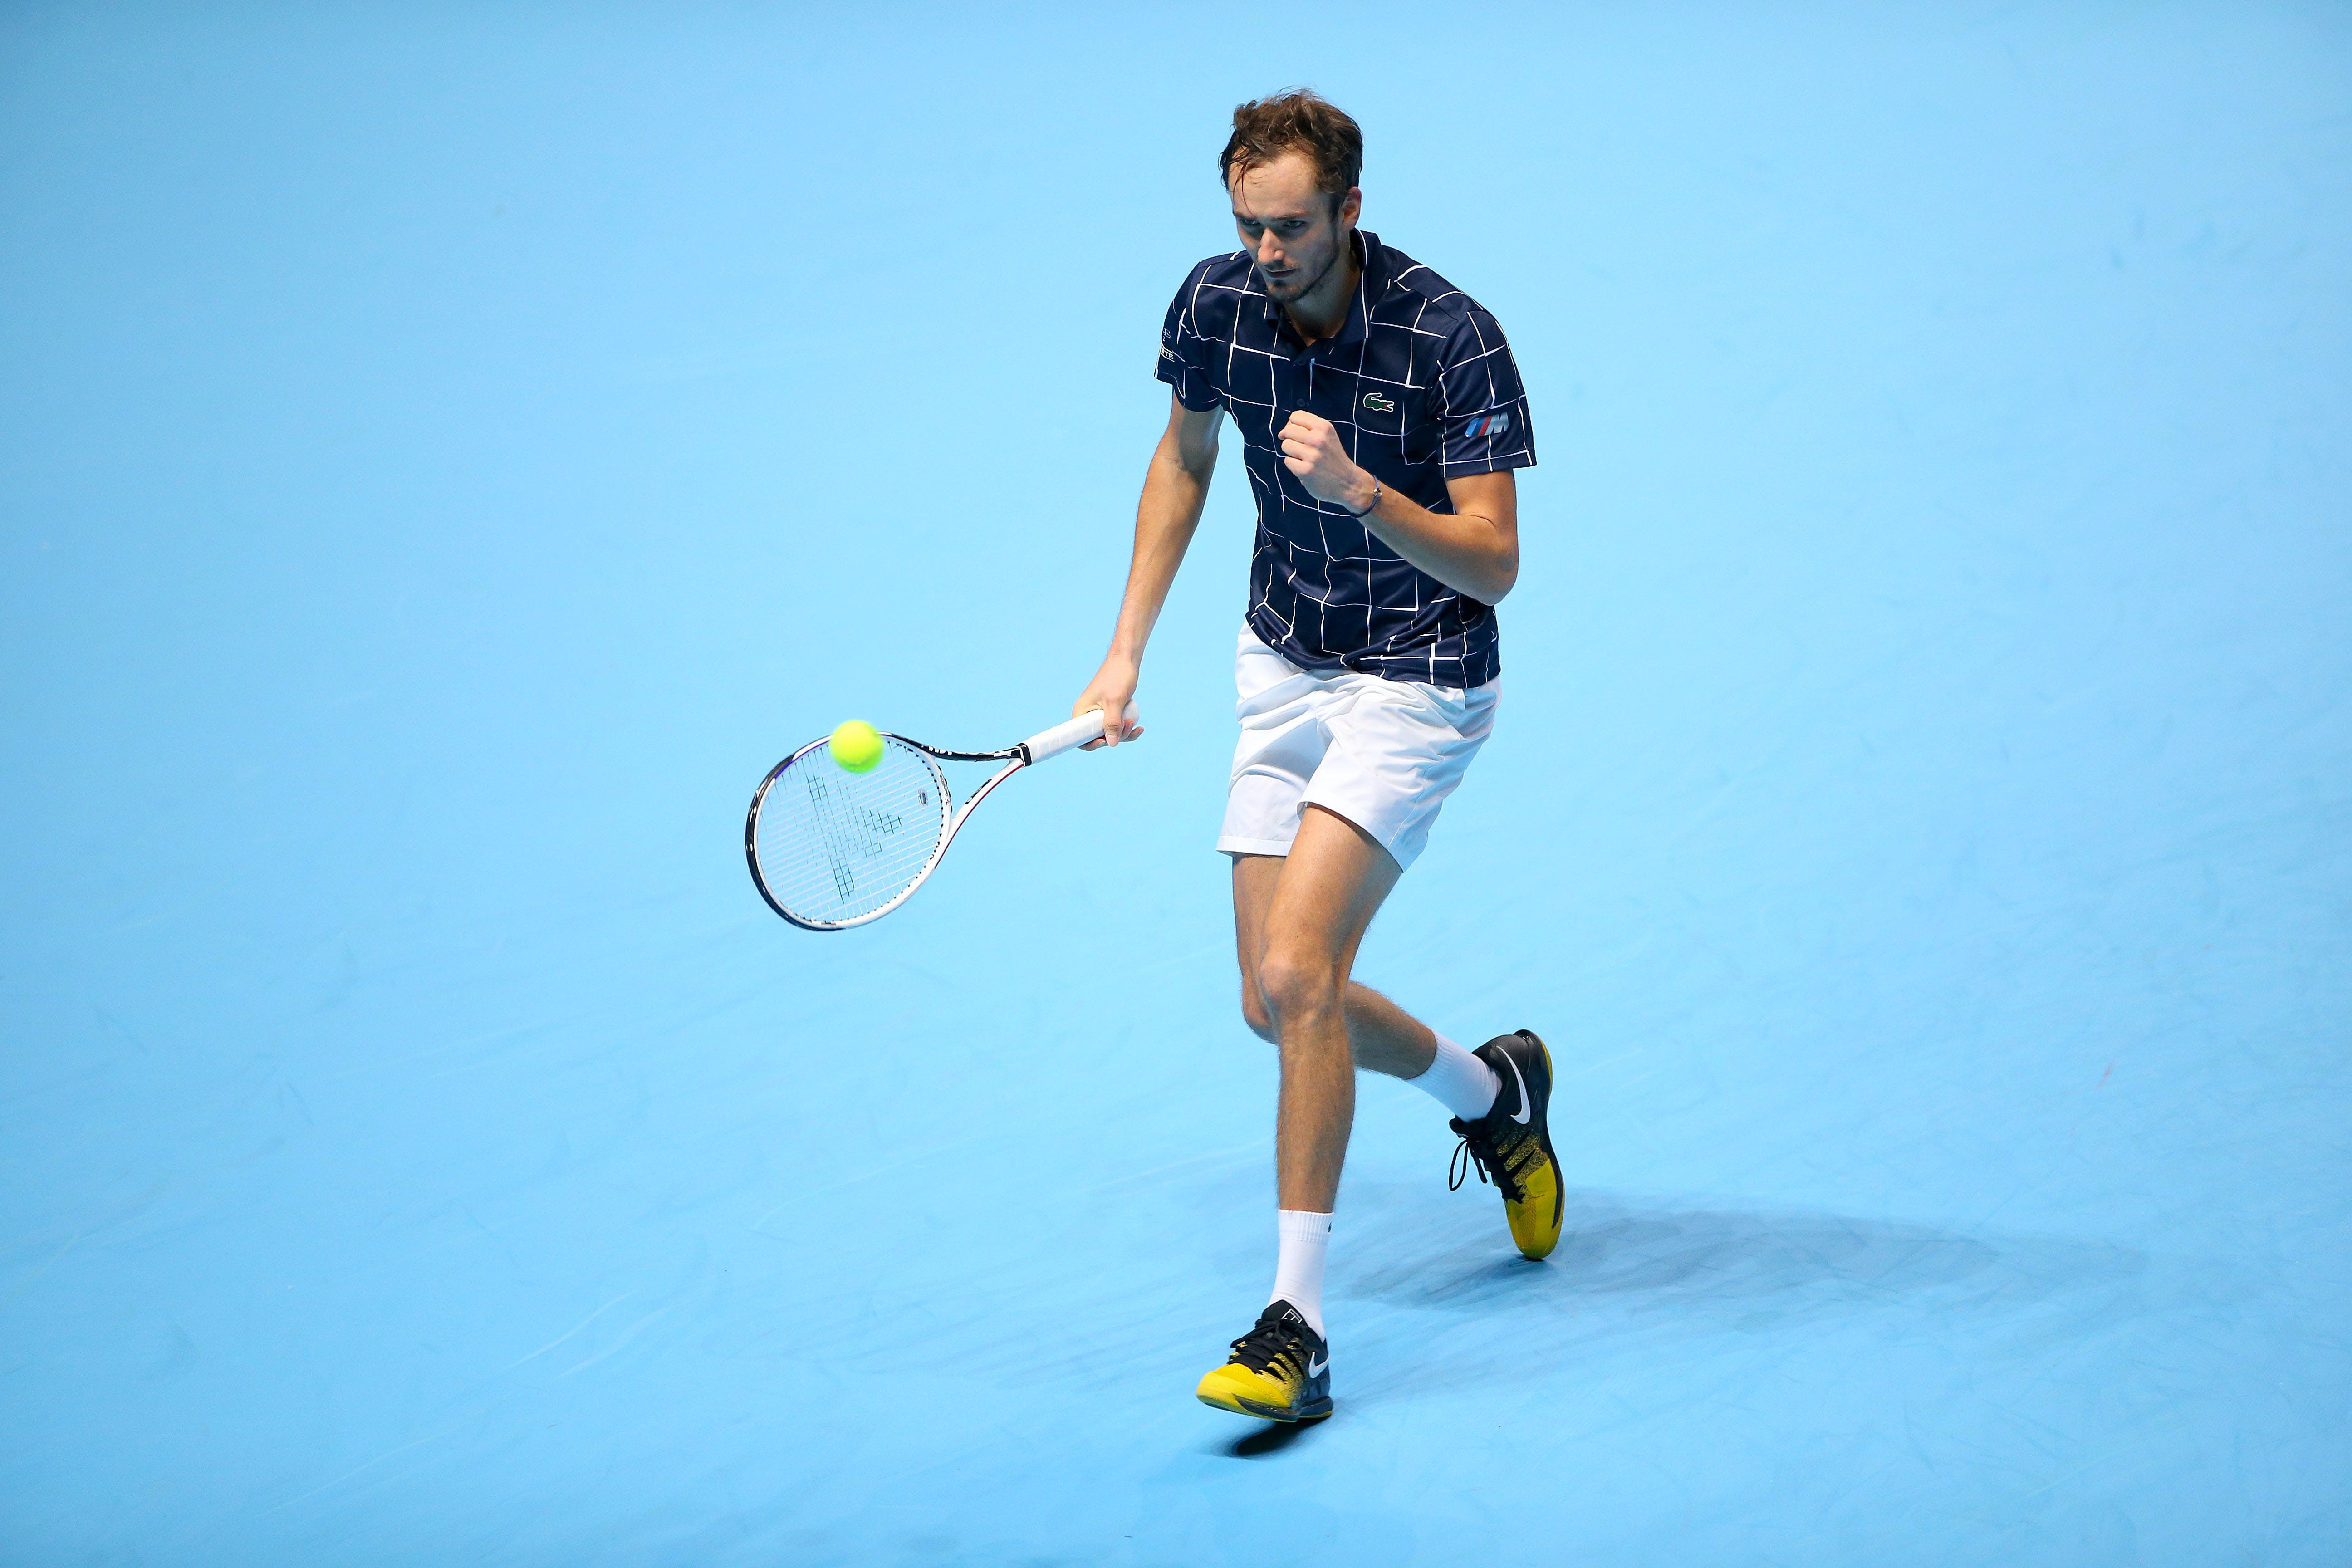 Daniil Medvedev celebrating during his round-robin match against Novak Djokovic at the ATP Finals 2020